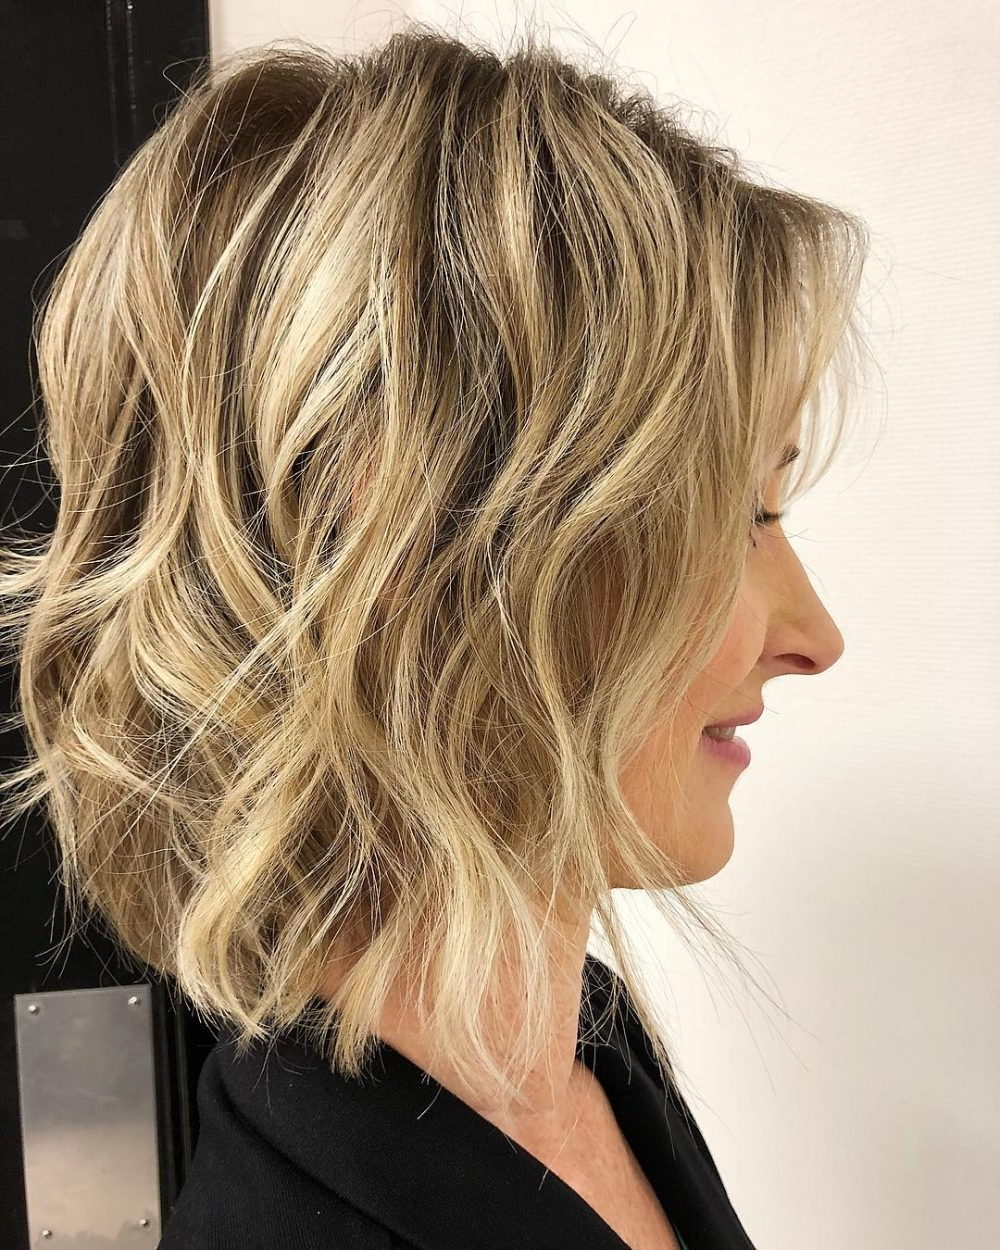 43 Perfect Short Hairstyles For Fine Hair In 2018 For Short Hairstyles For Thin Fine Hair (View 19 of 25)